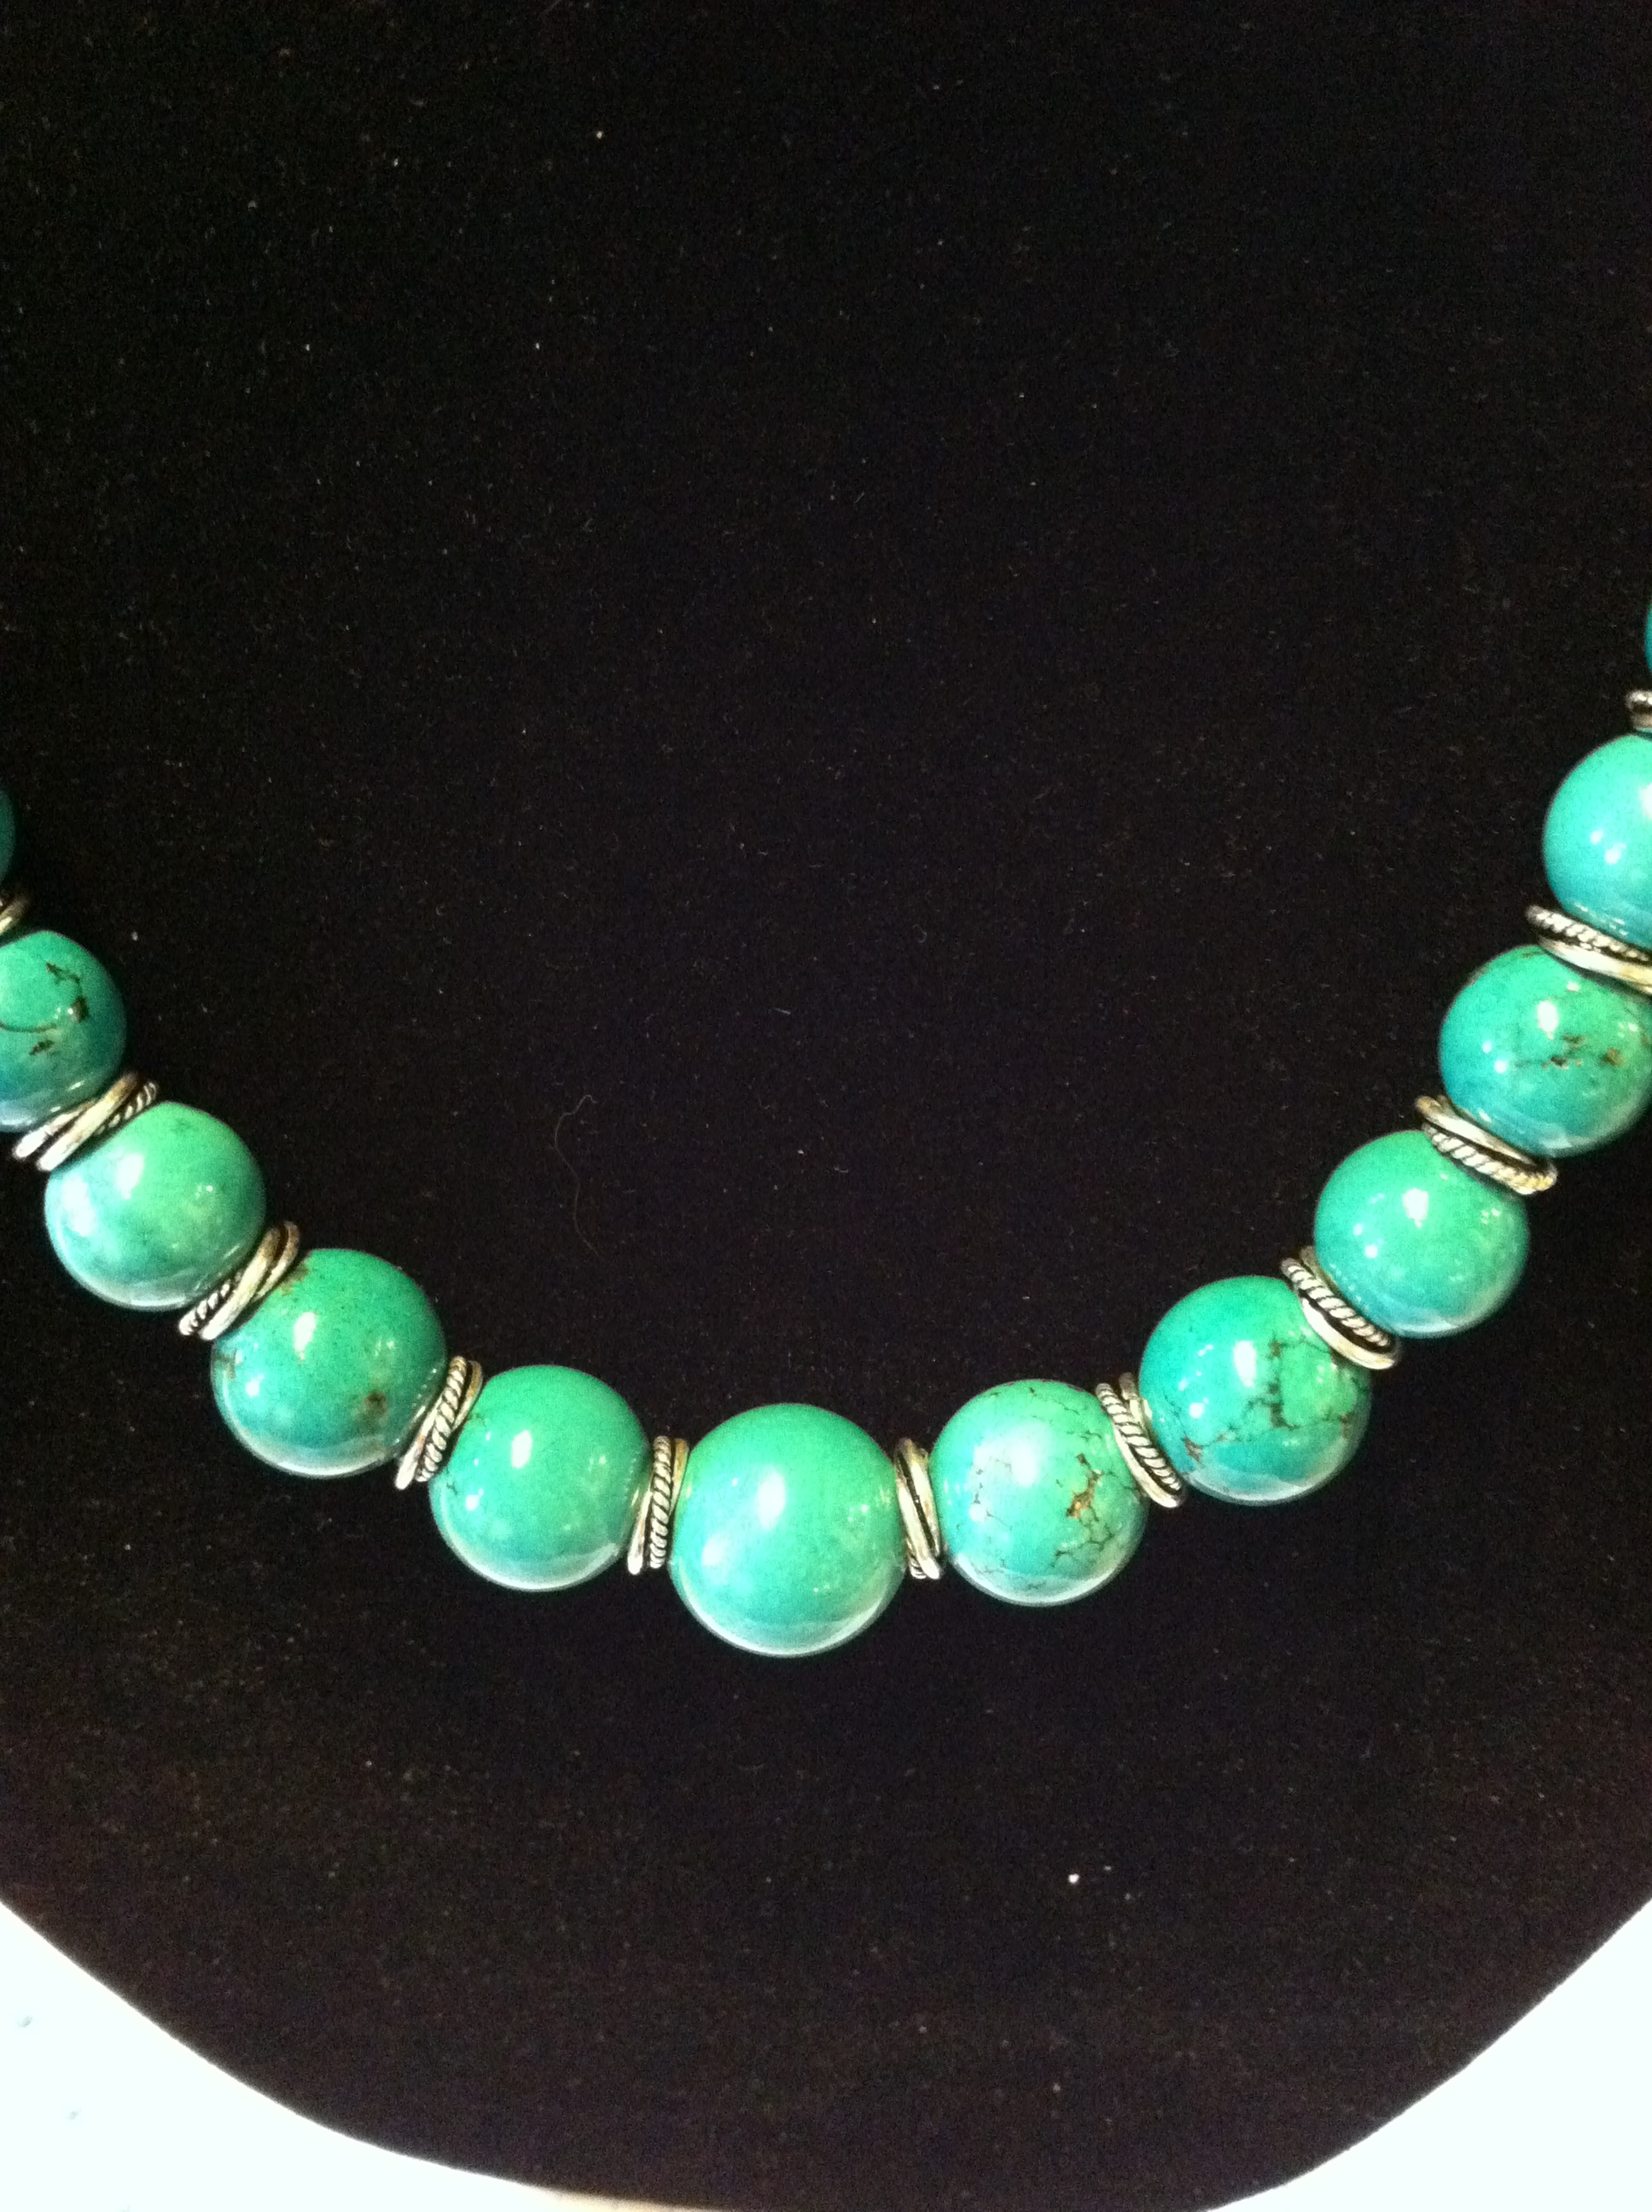 Turquoise Necklace #3.JPG